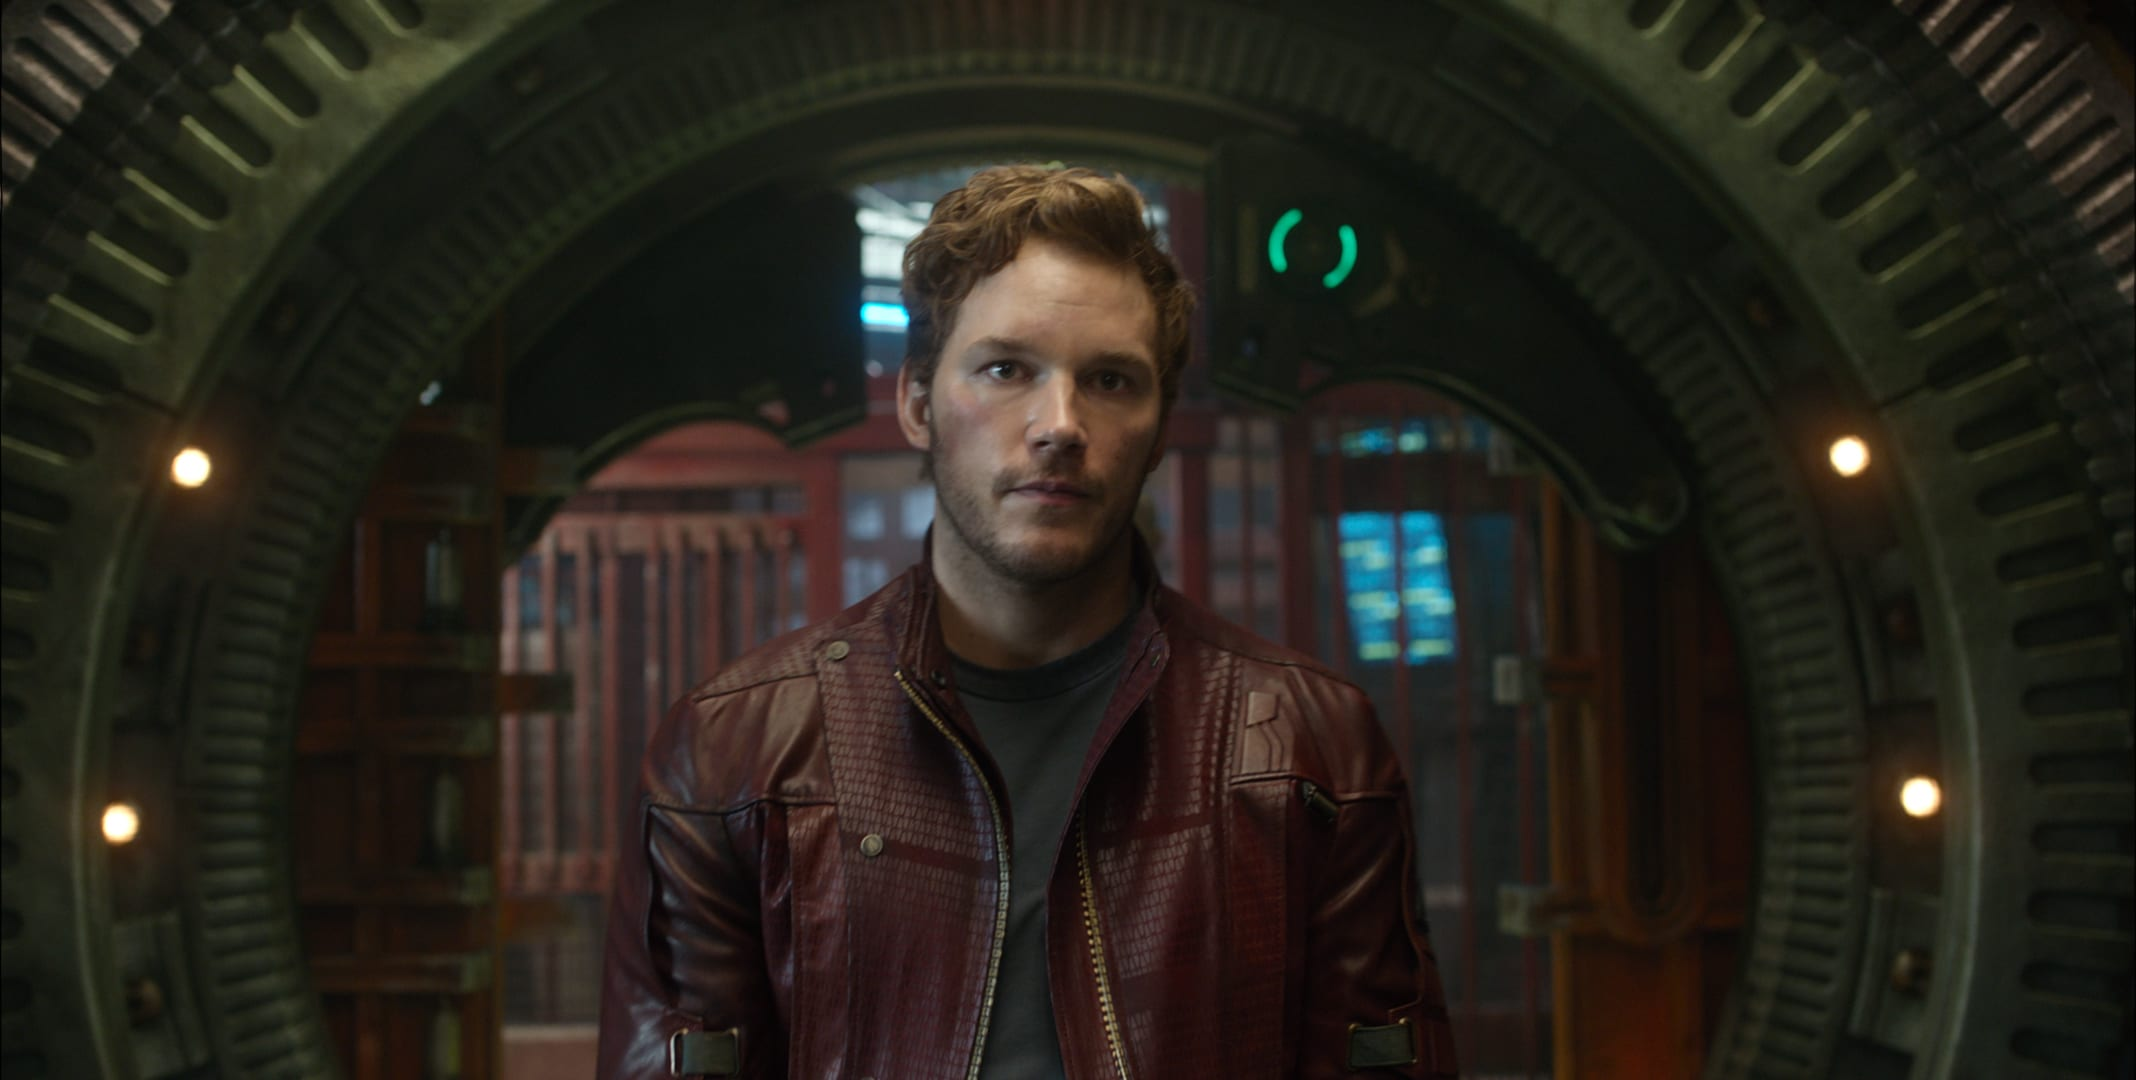 Peter Quill aka Starlord in a space prison in the movie Guardians of the Galaxy